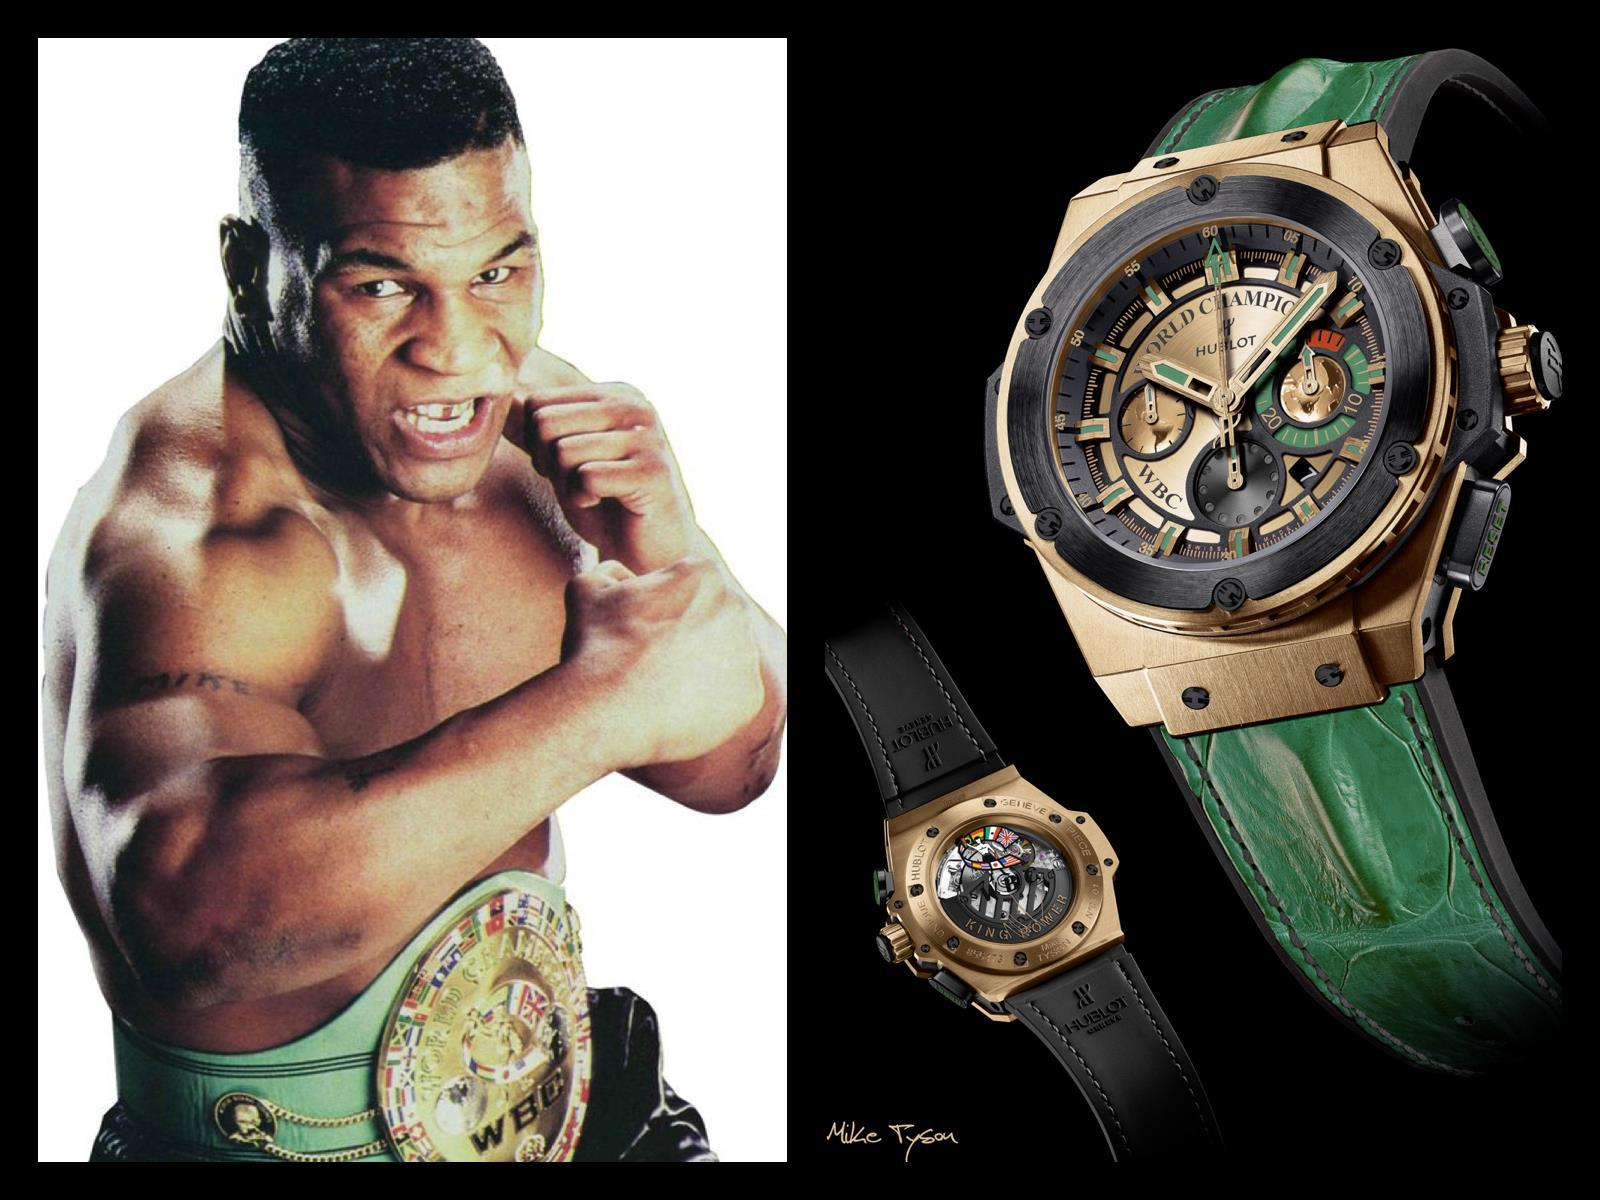 Mike Tyson watch wallpapers and images - wallpapers, pictures, photos